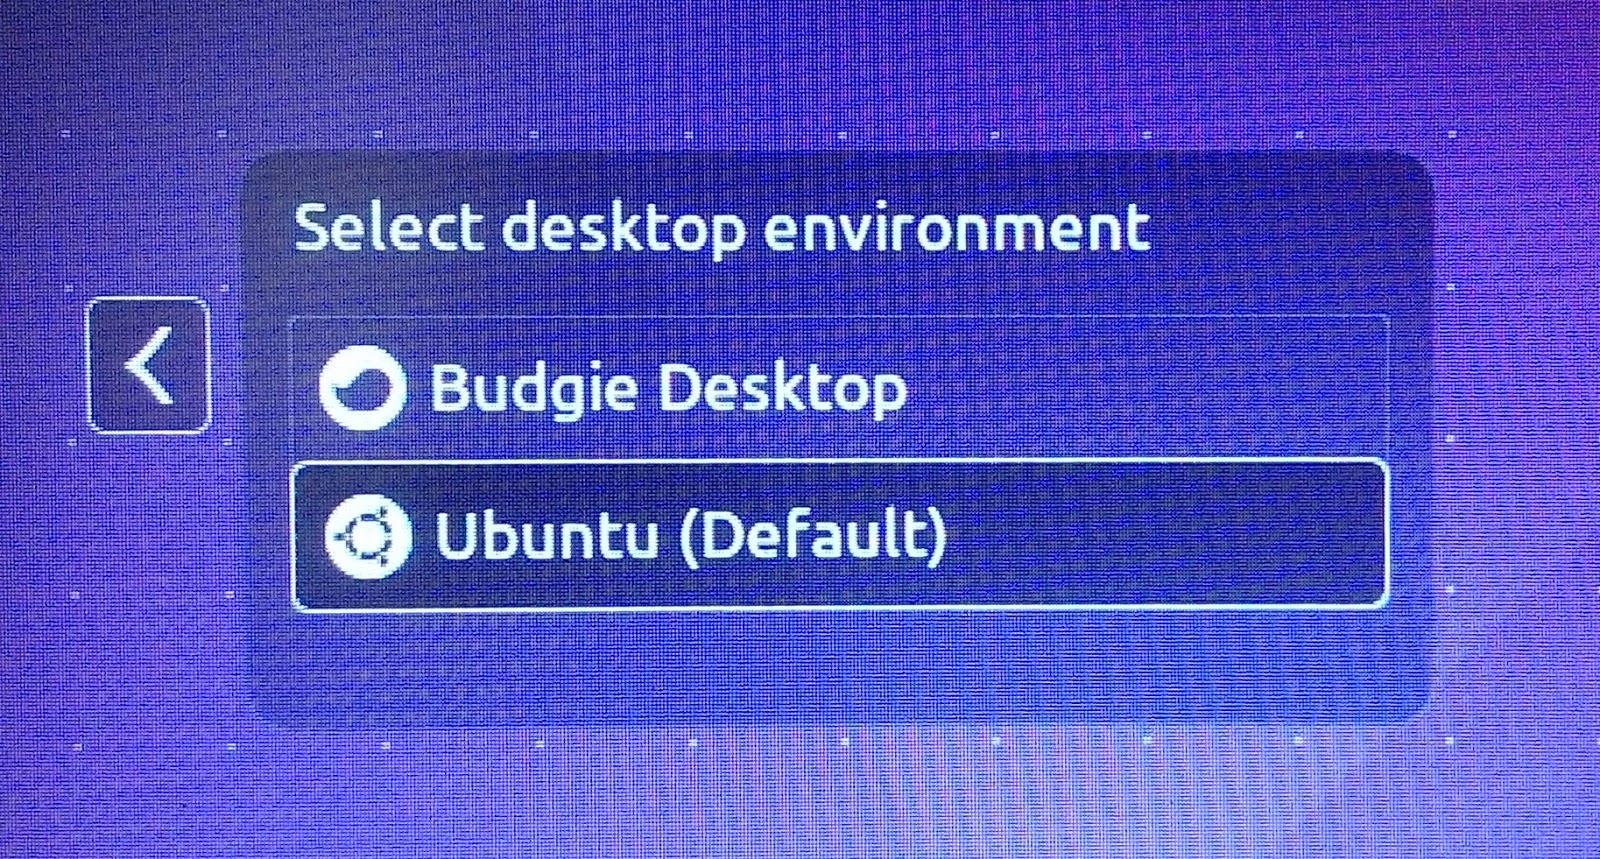 How to install program on Ubuntu: How to Install Budgie Desktop 10 2